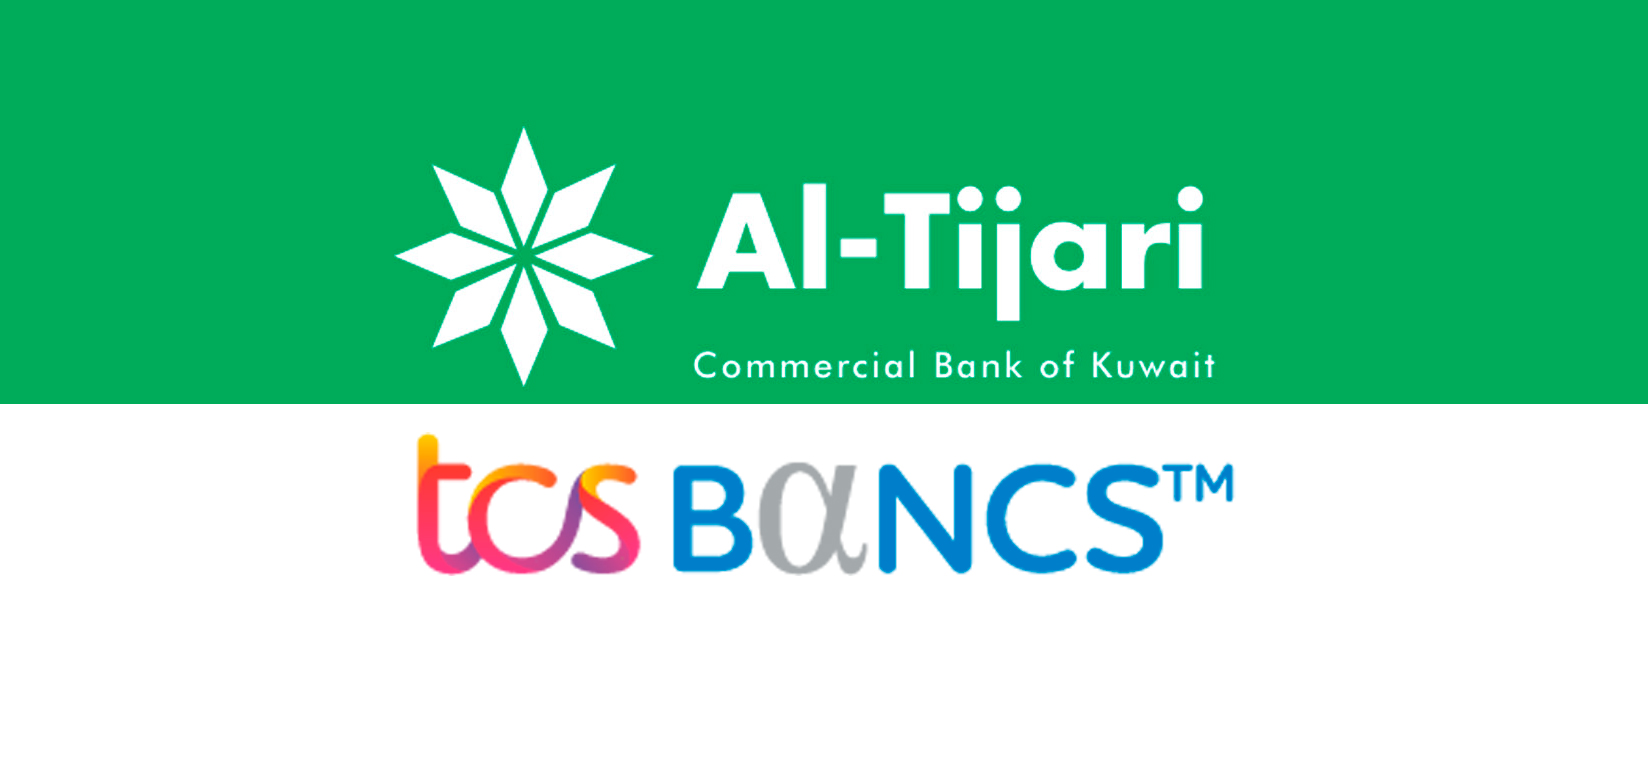 Commercial Bank of Kuwait Selects TCS BaNCS to Transform Treasury Operations and Drive Future Growth